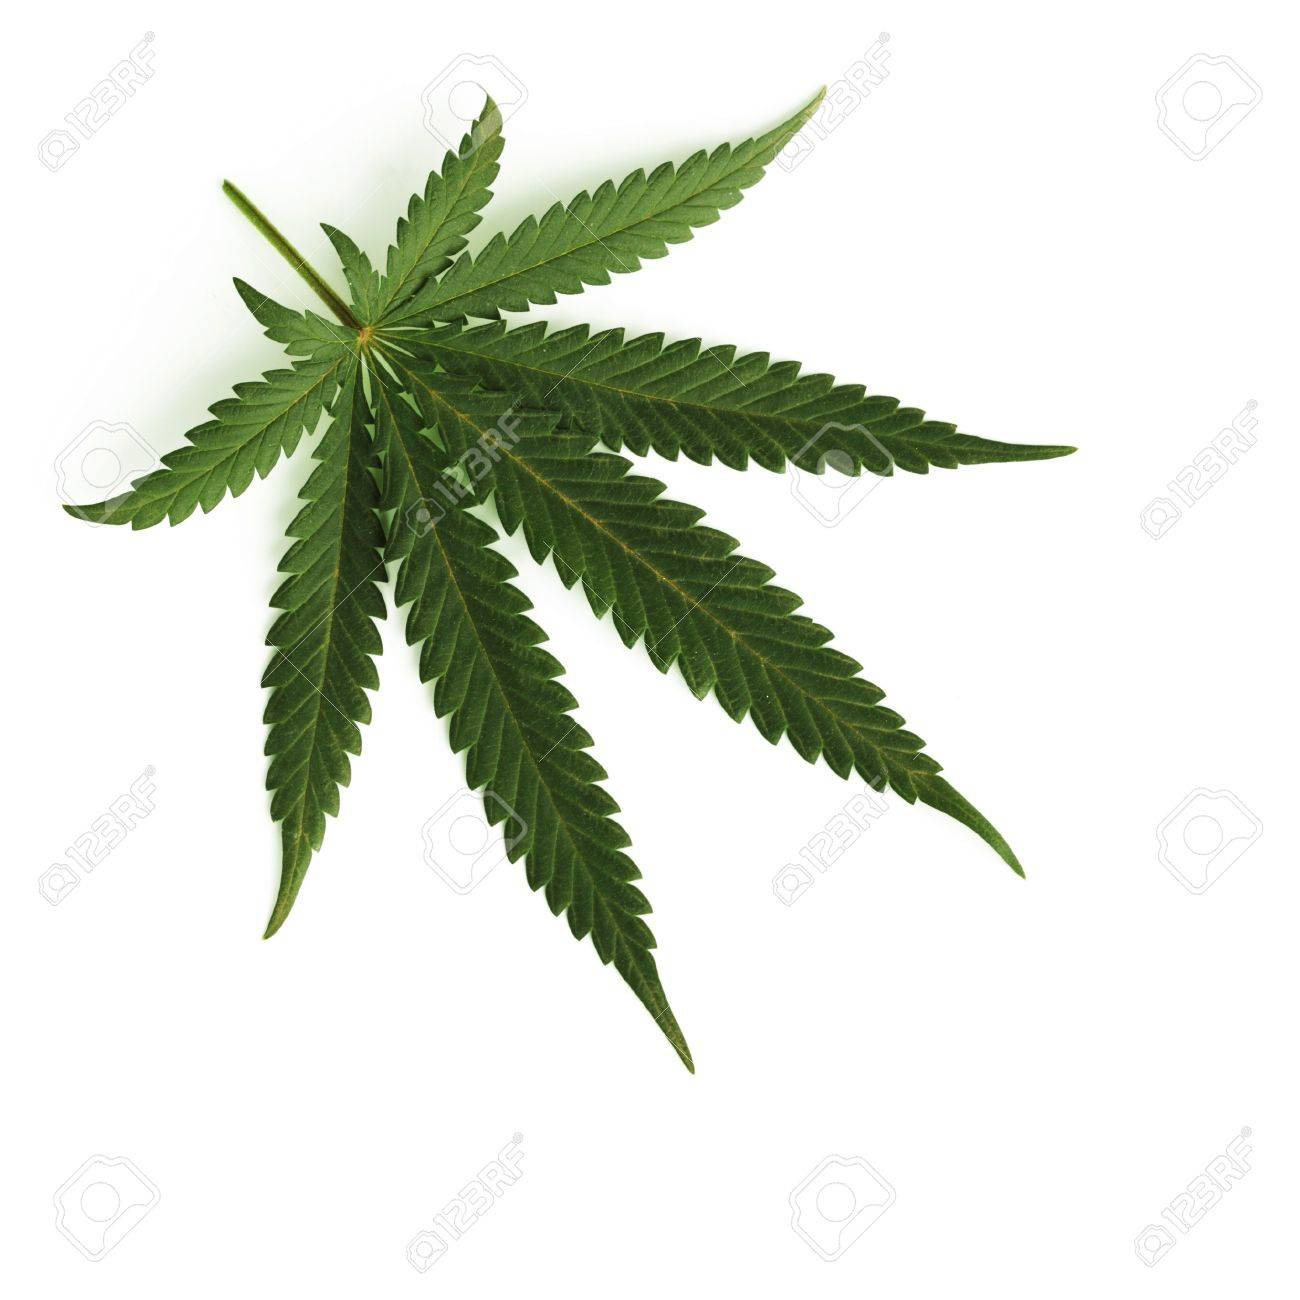 cannabis leaf isolated on white background Stock Photo - 9006059